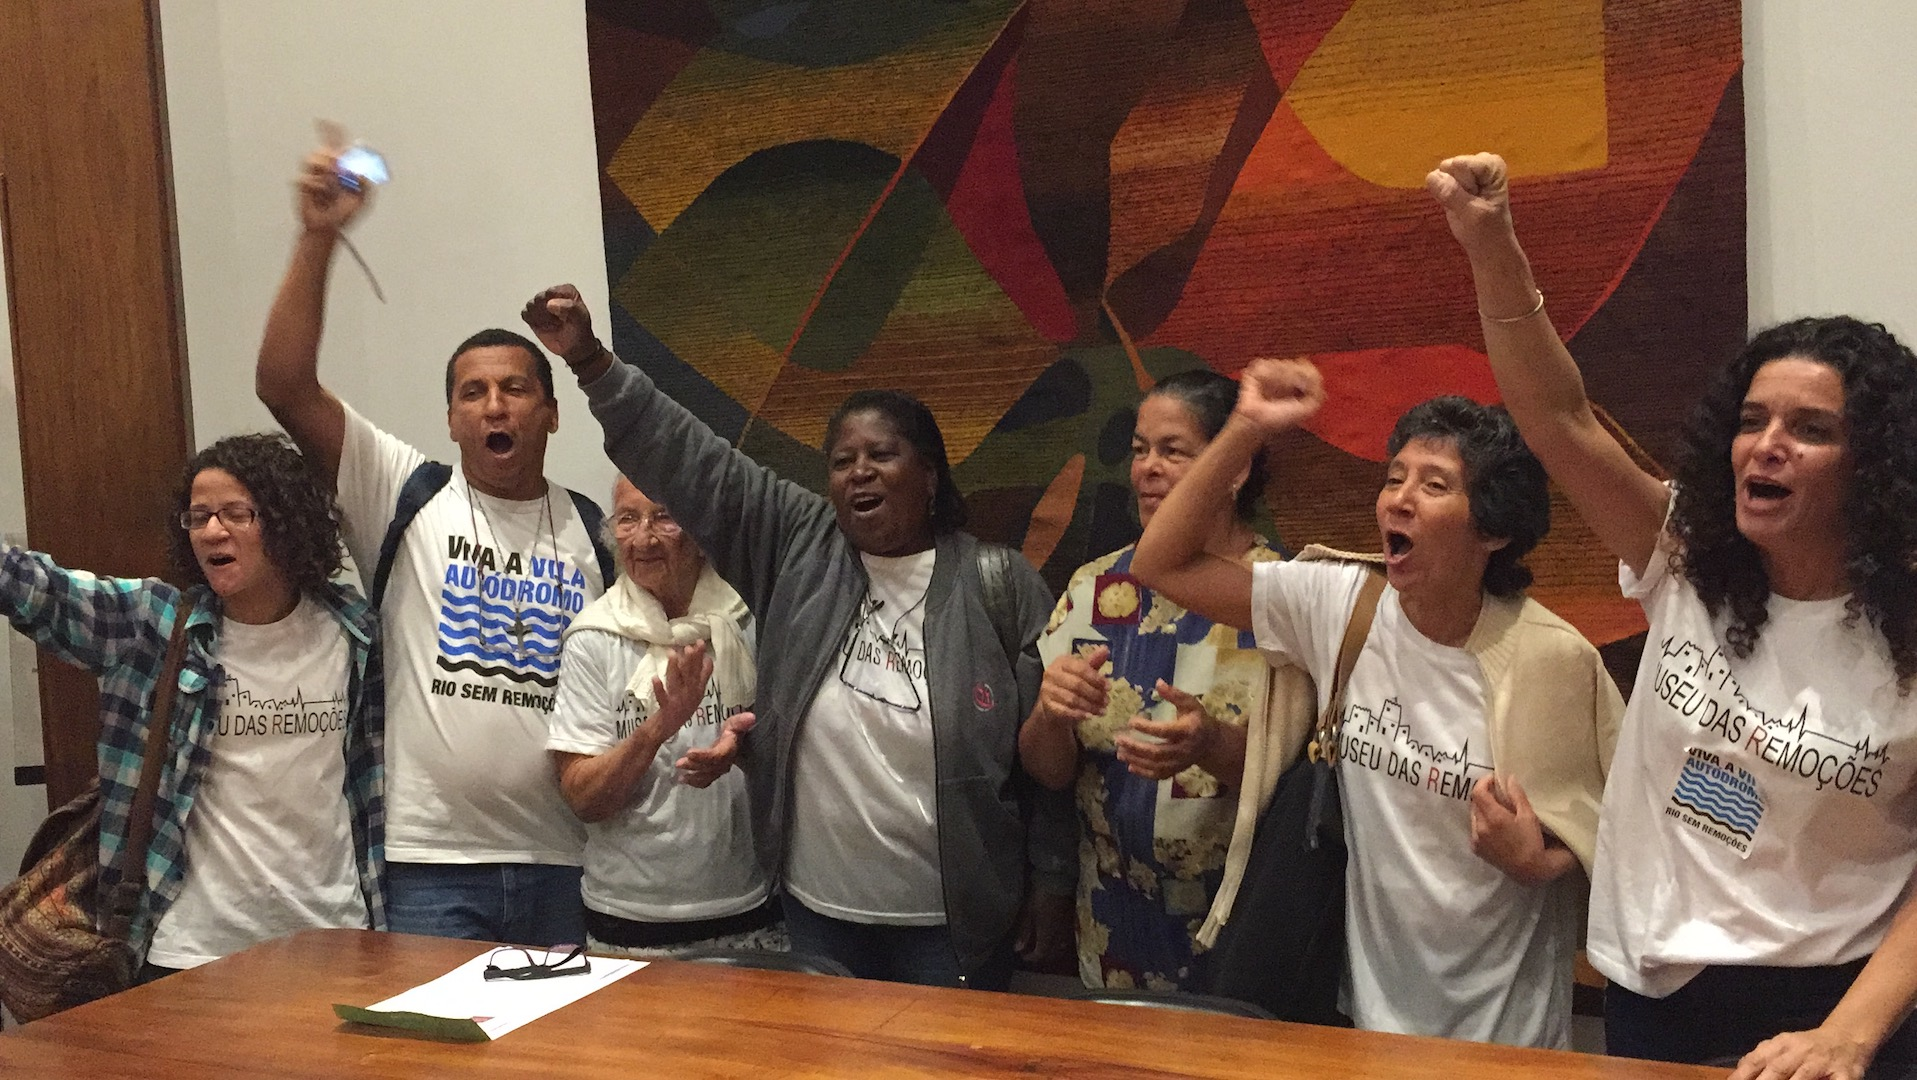 Vila Autodromo residents celebrate by showing their powerful resistance